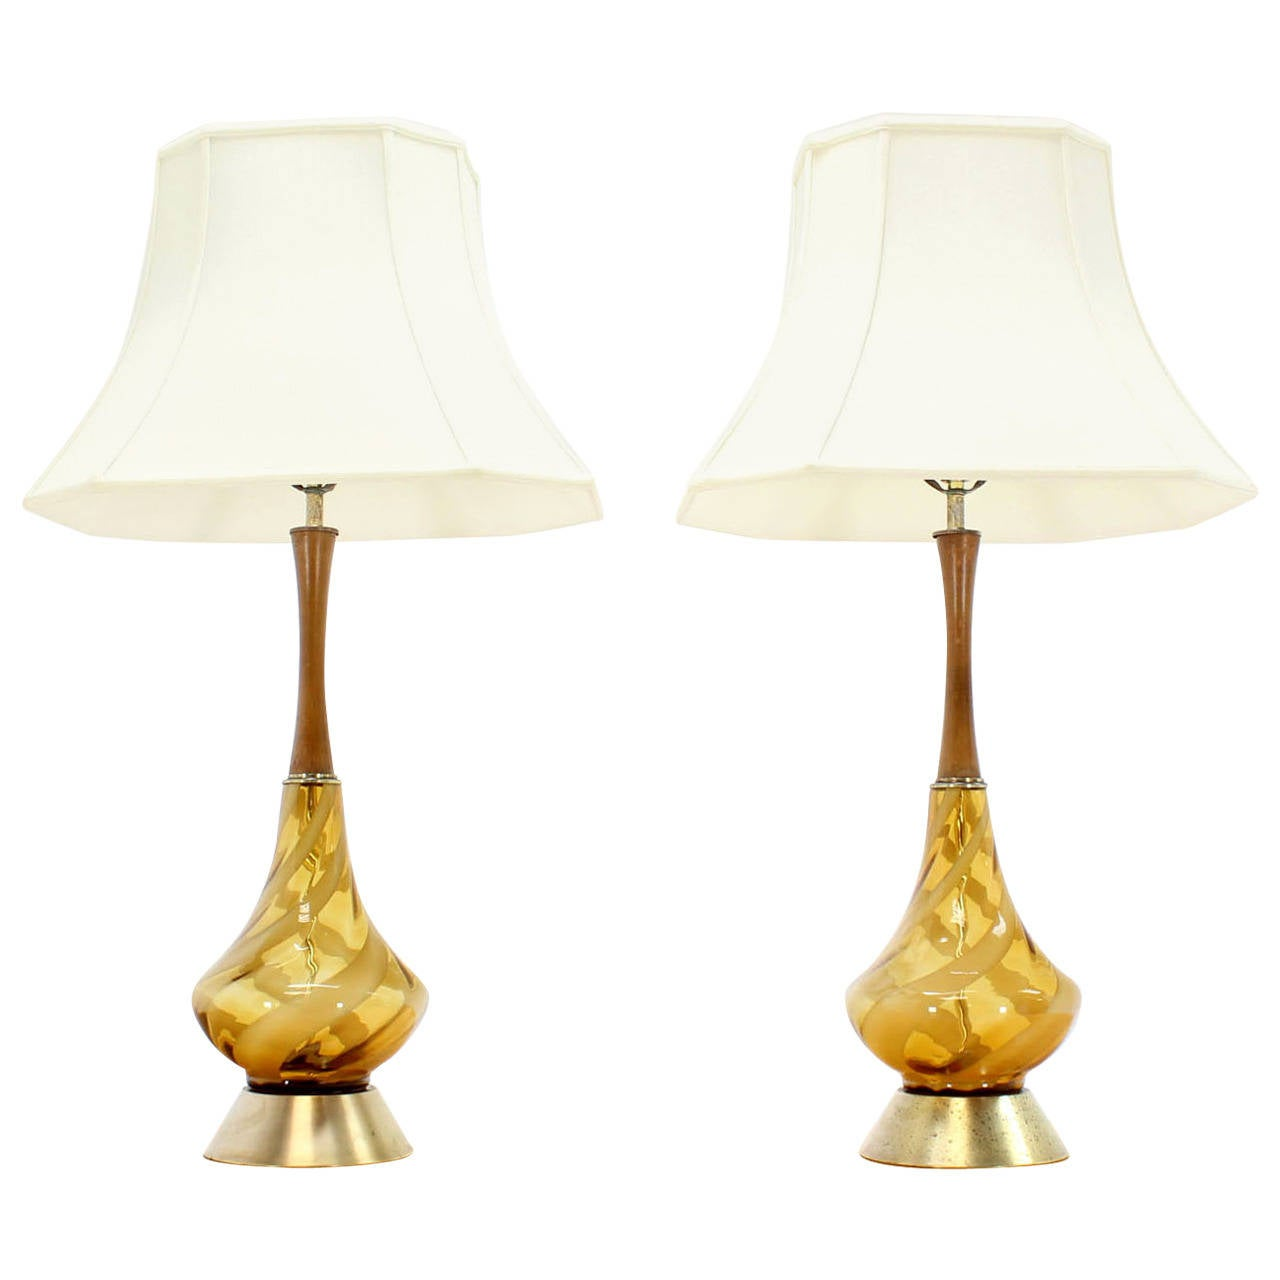 mid century modern amber glass table lamps with silk shades at 1stdibs. Black Bedroom Furniture Sets. Home Design Ideas